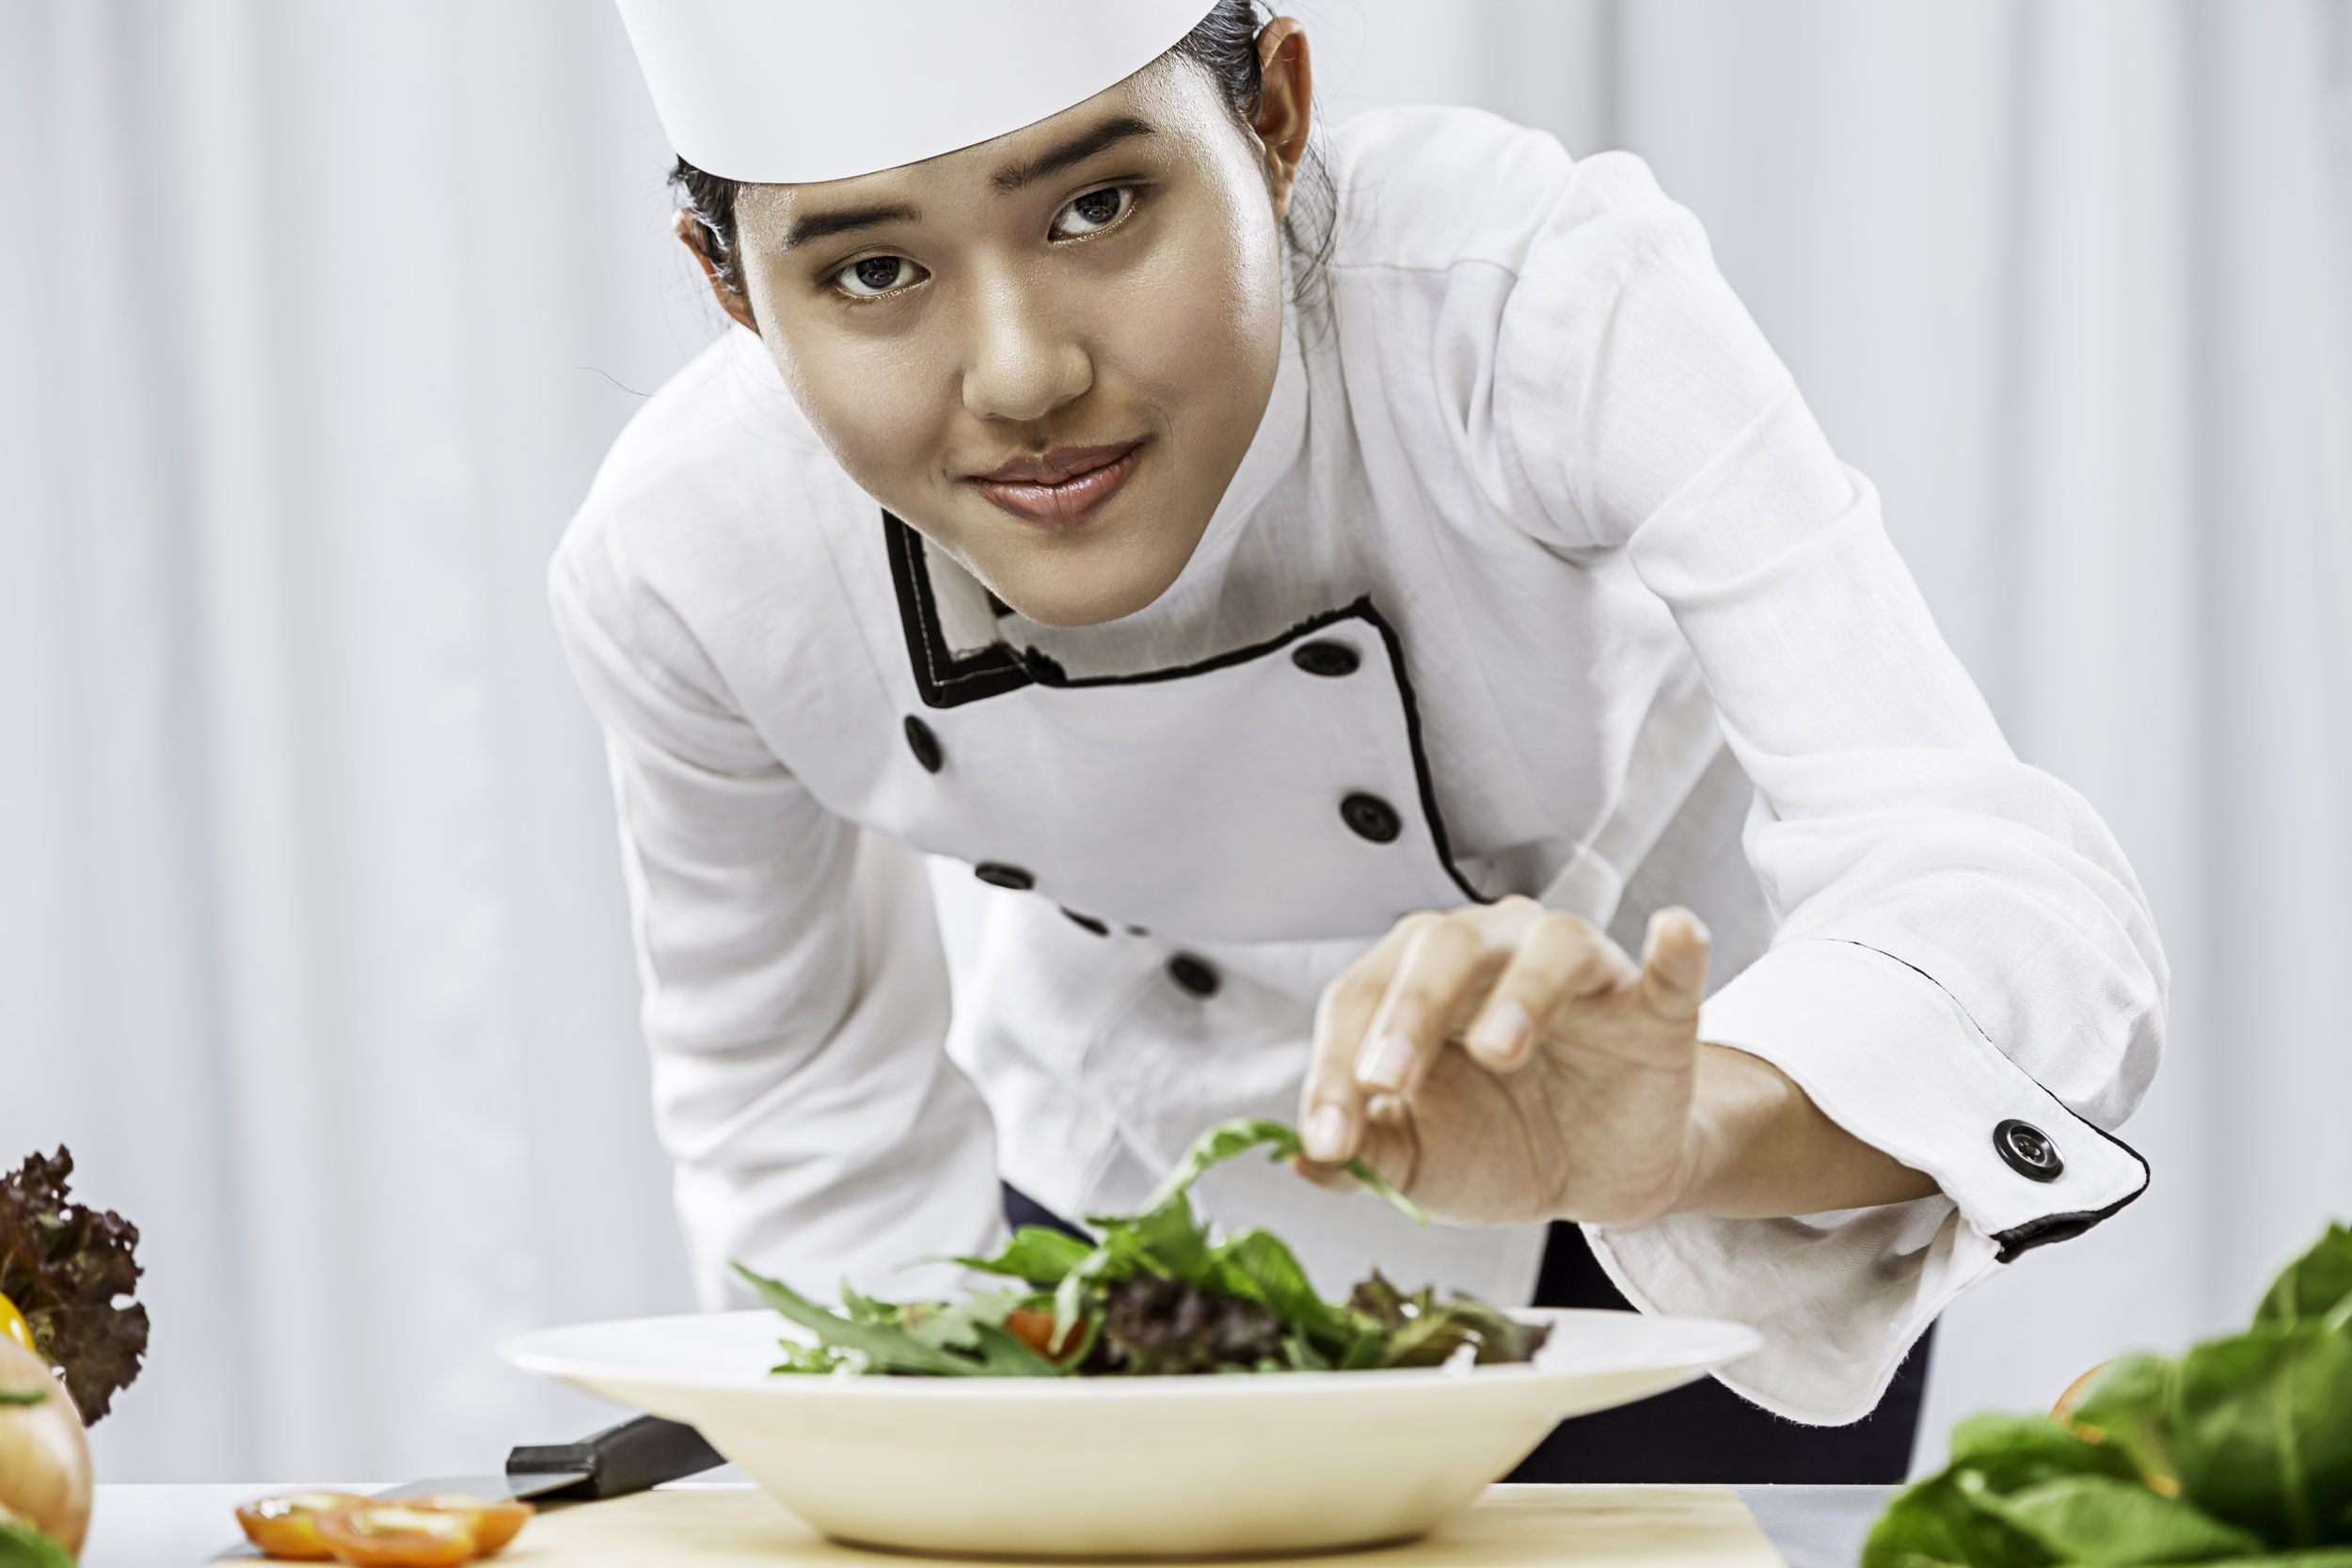 bigstock-chef-preparing-salad-109989908.jpg